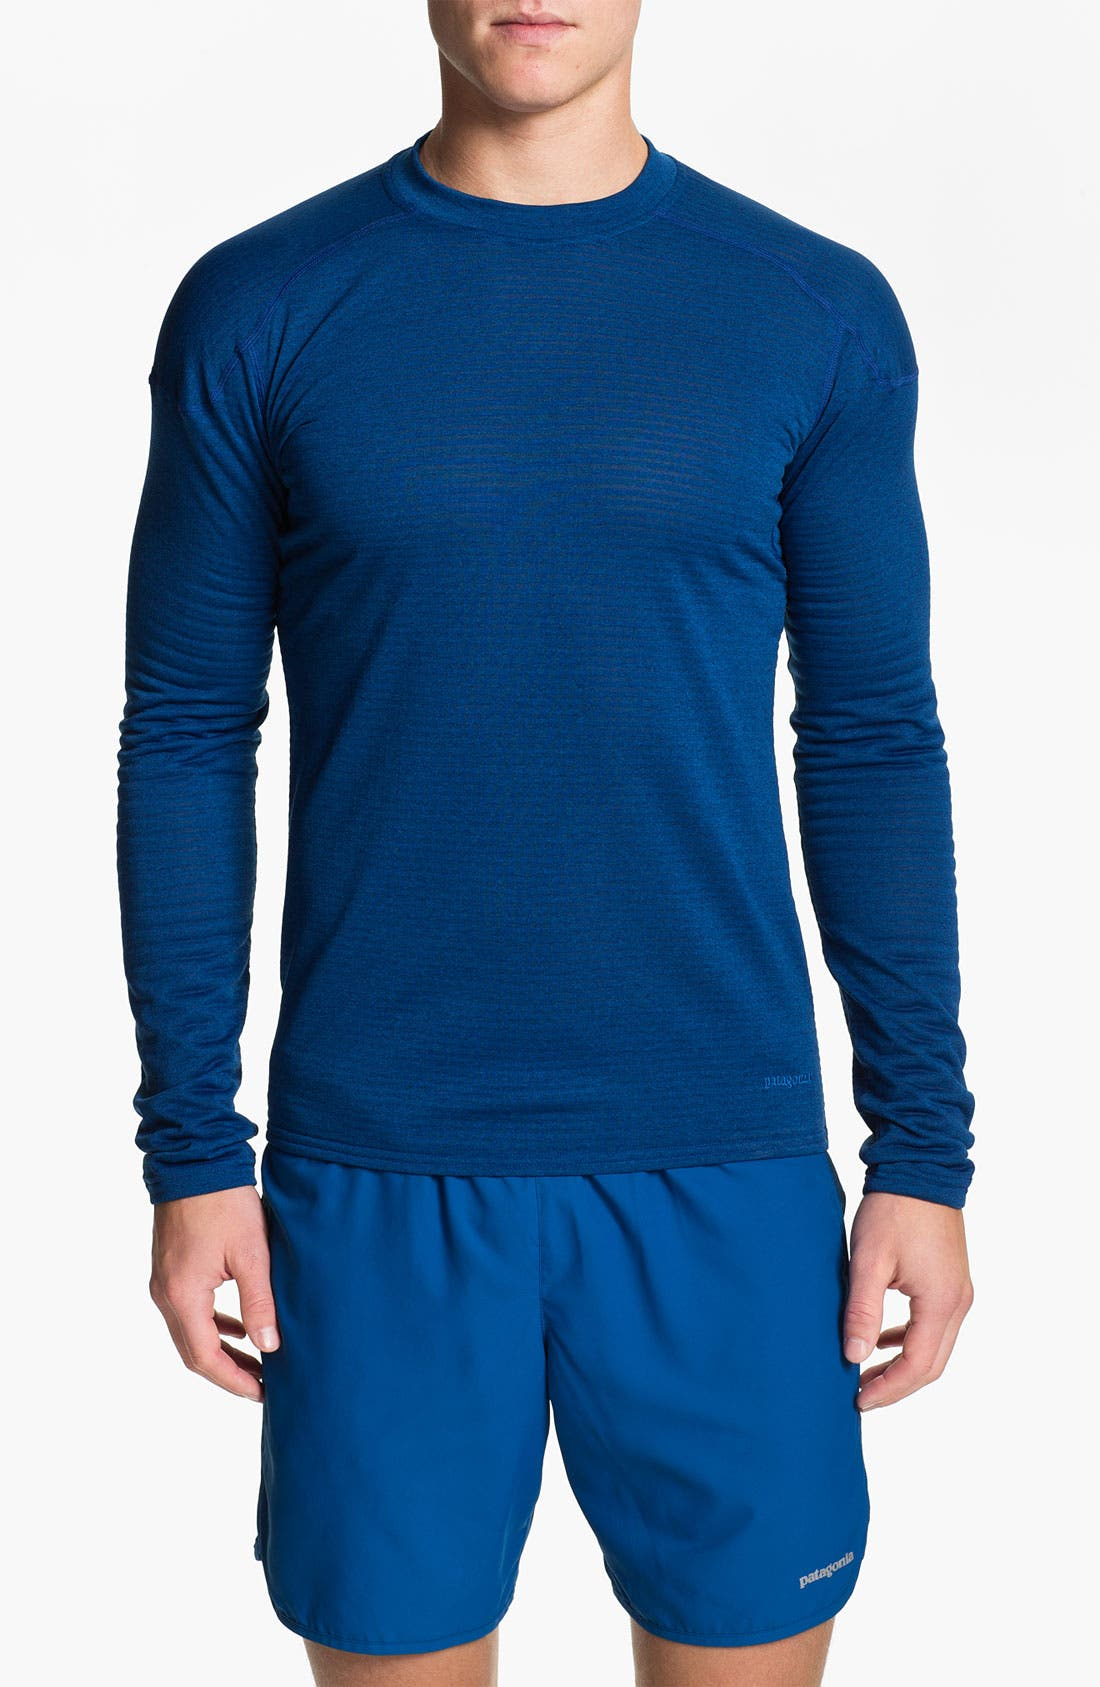 Alternate Image 1 Selected - Patagonia 'Capilene® 4' Expedition Weight Crewneck Top (Online Only)